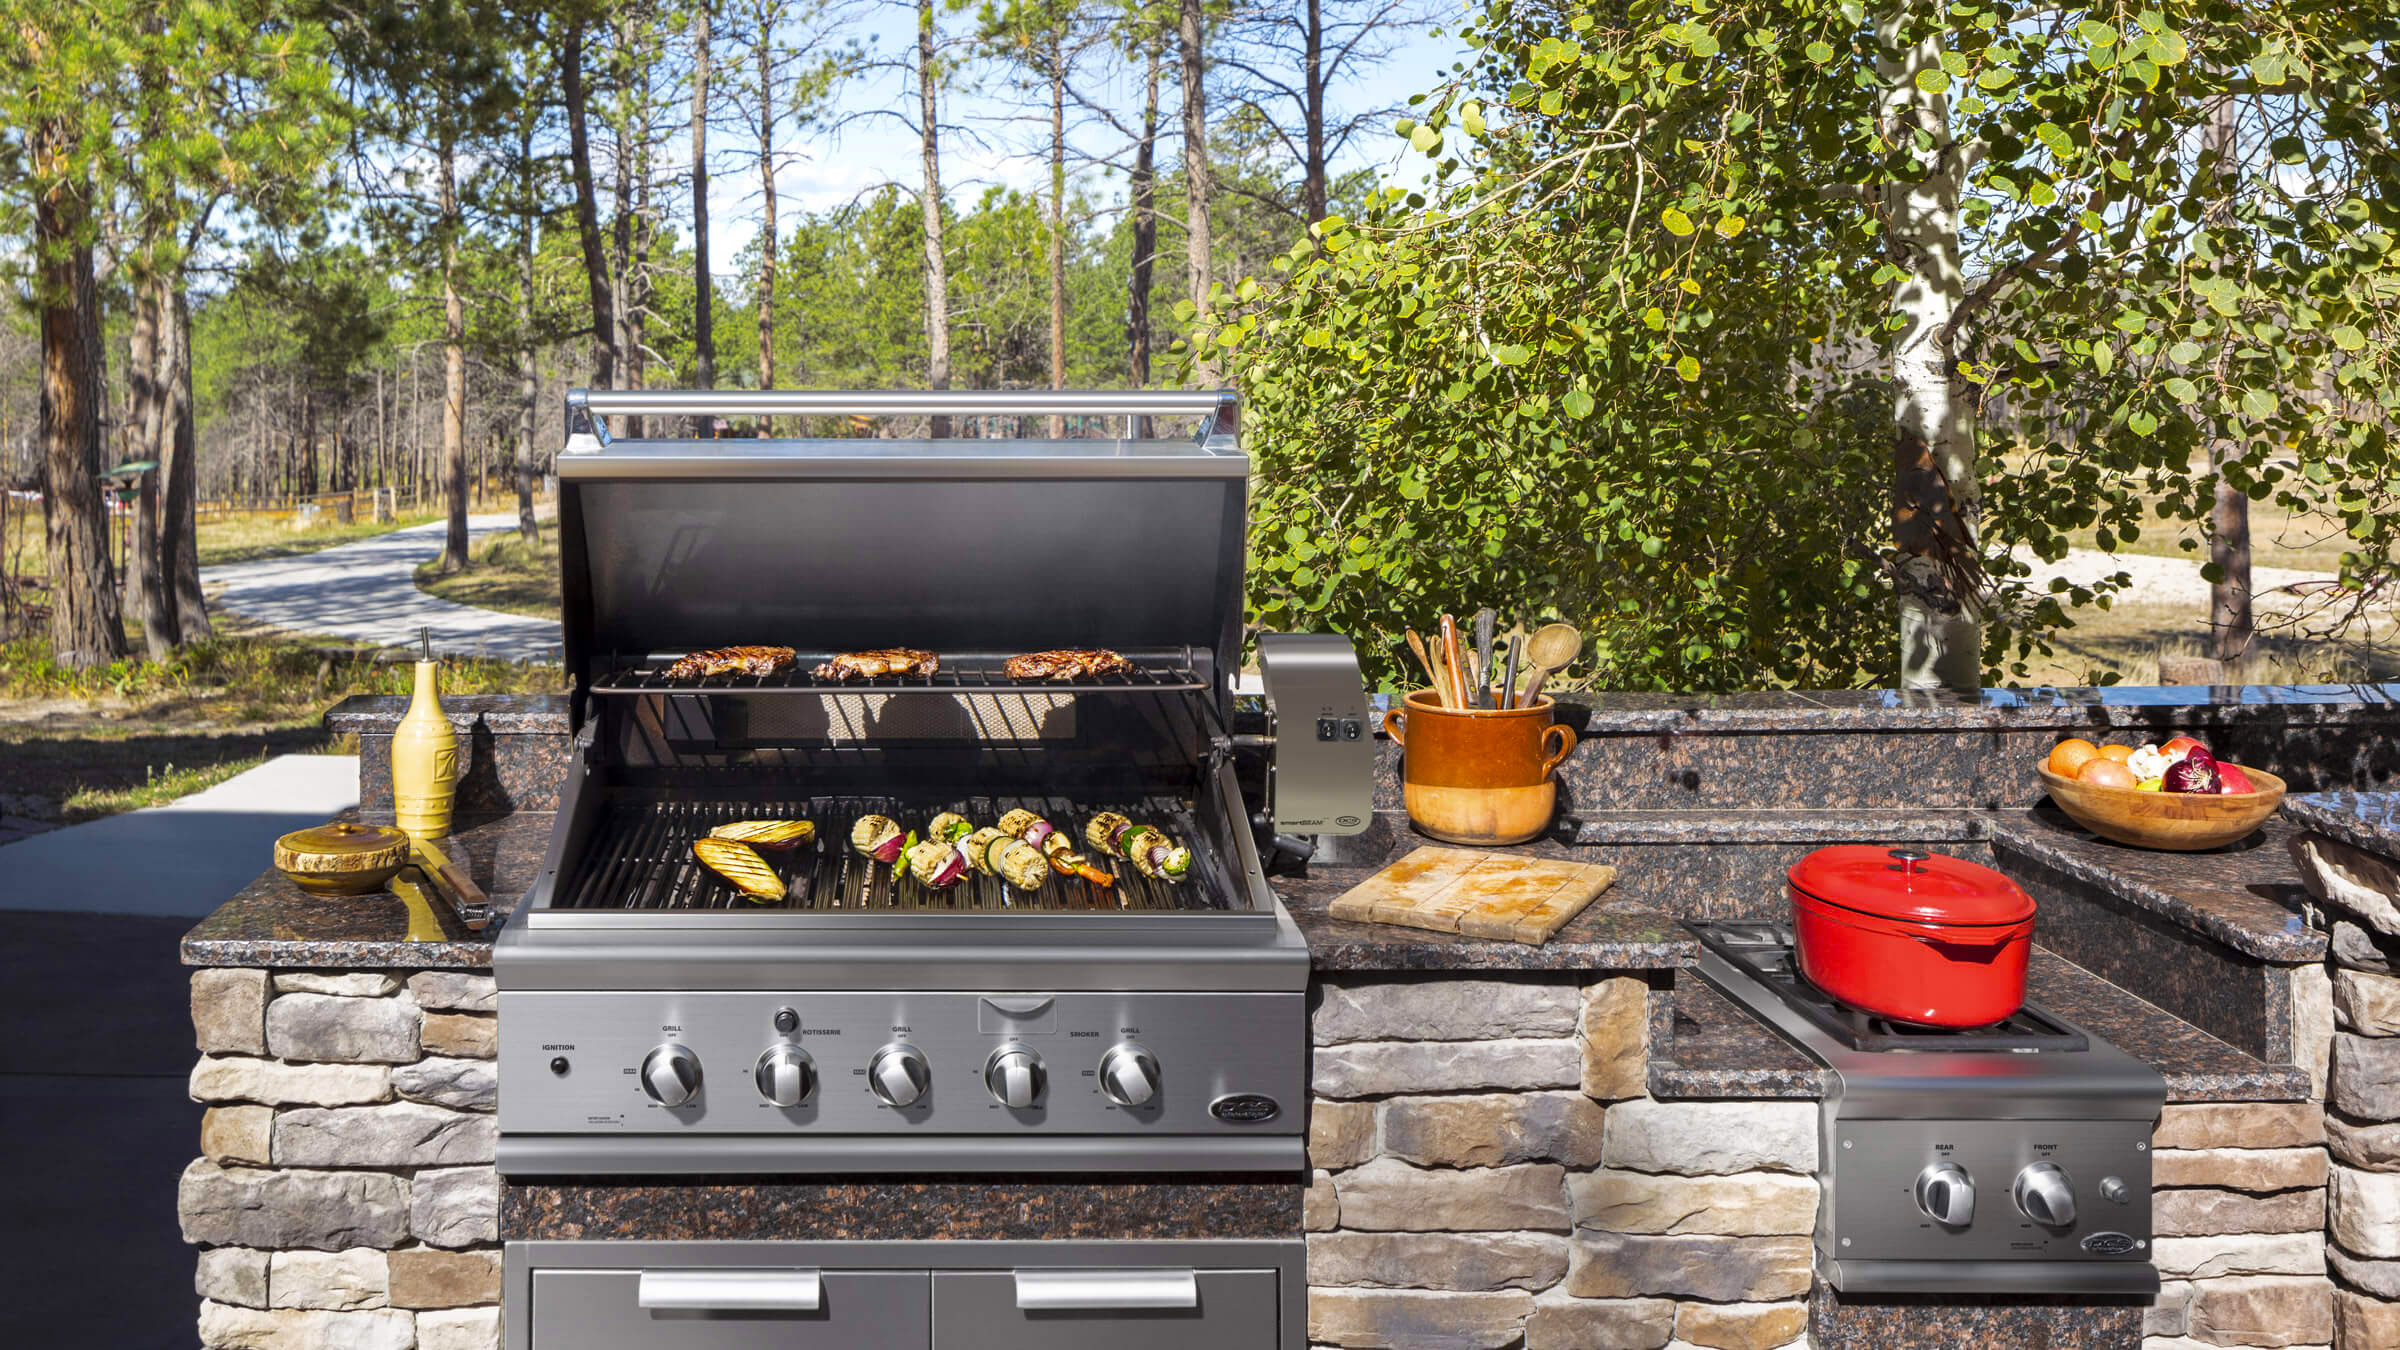 backyard-kitchen-designs-ideas-with-outdoor-kitchen-appliances-in-backyard-landscaping-ideas-to-build-small-outdoor-kitchen-grills-design